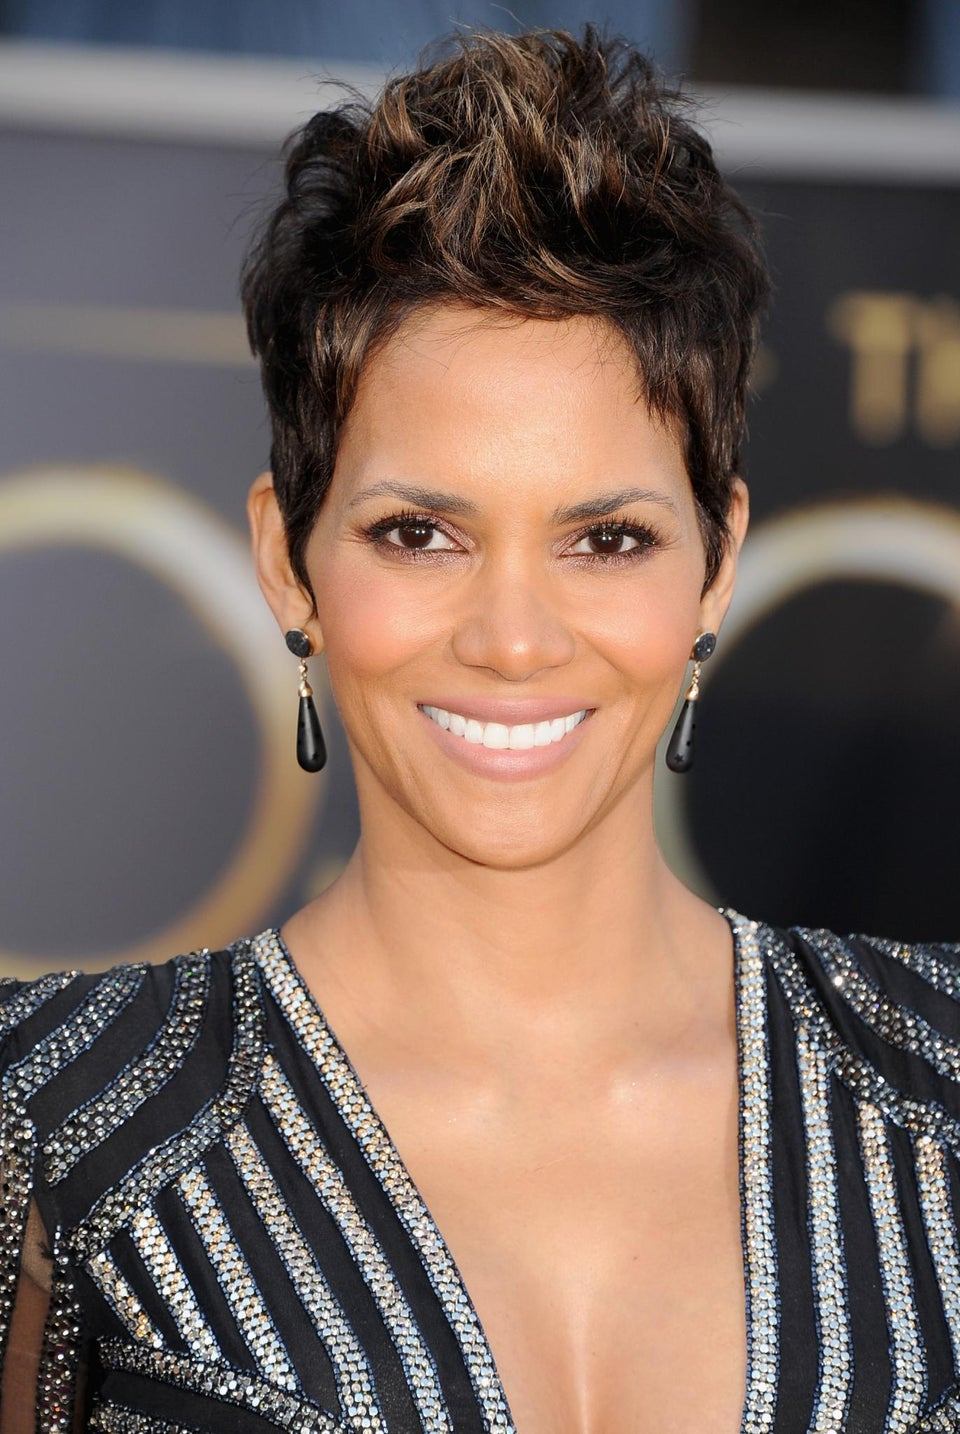 Report: Halle Berry Pregnant with Second Child